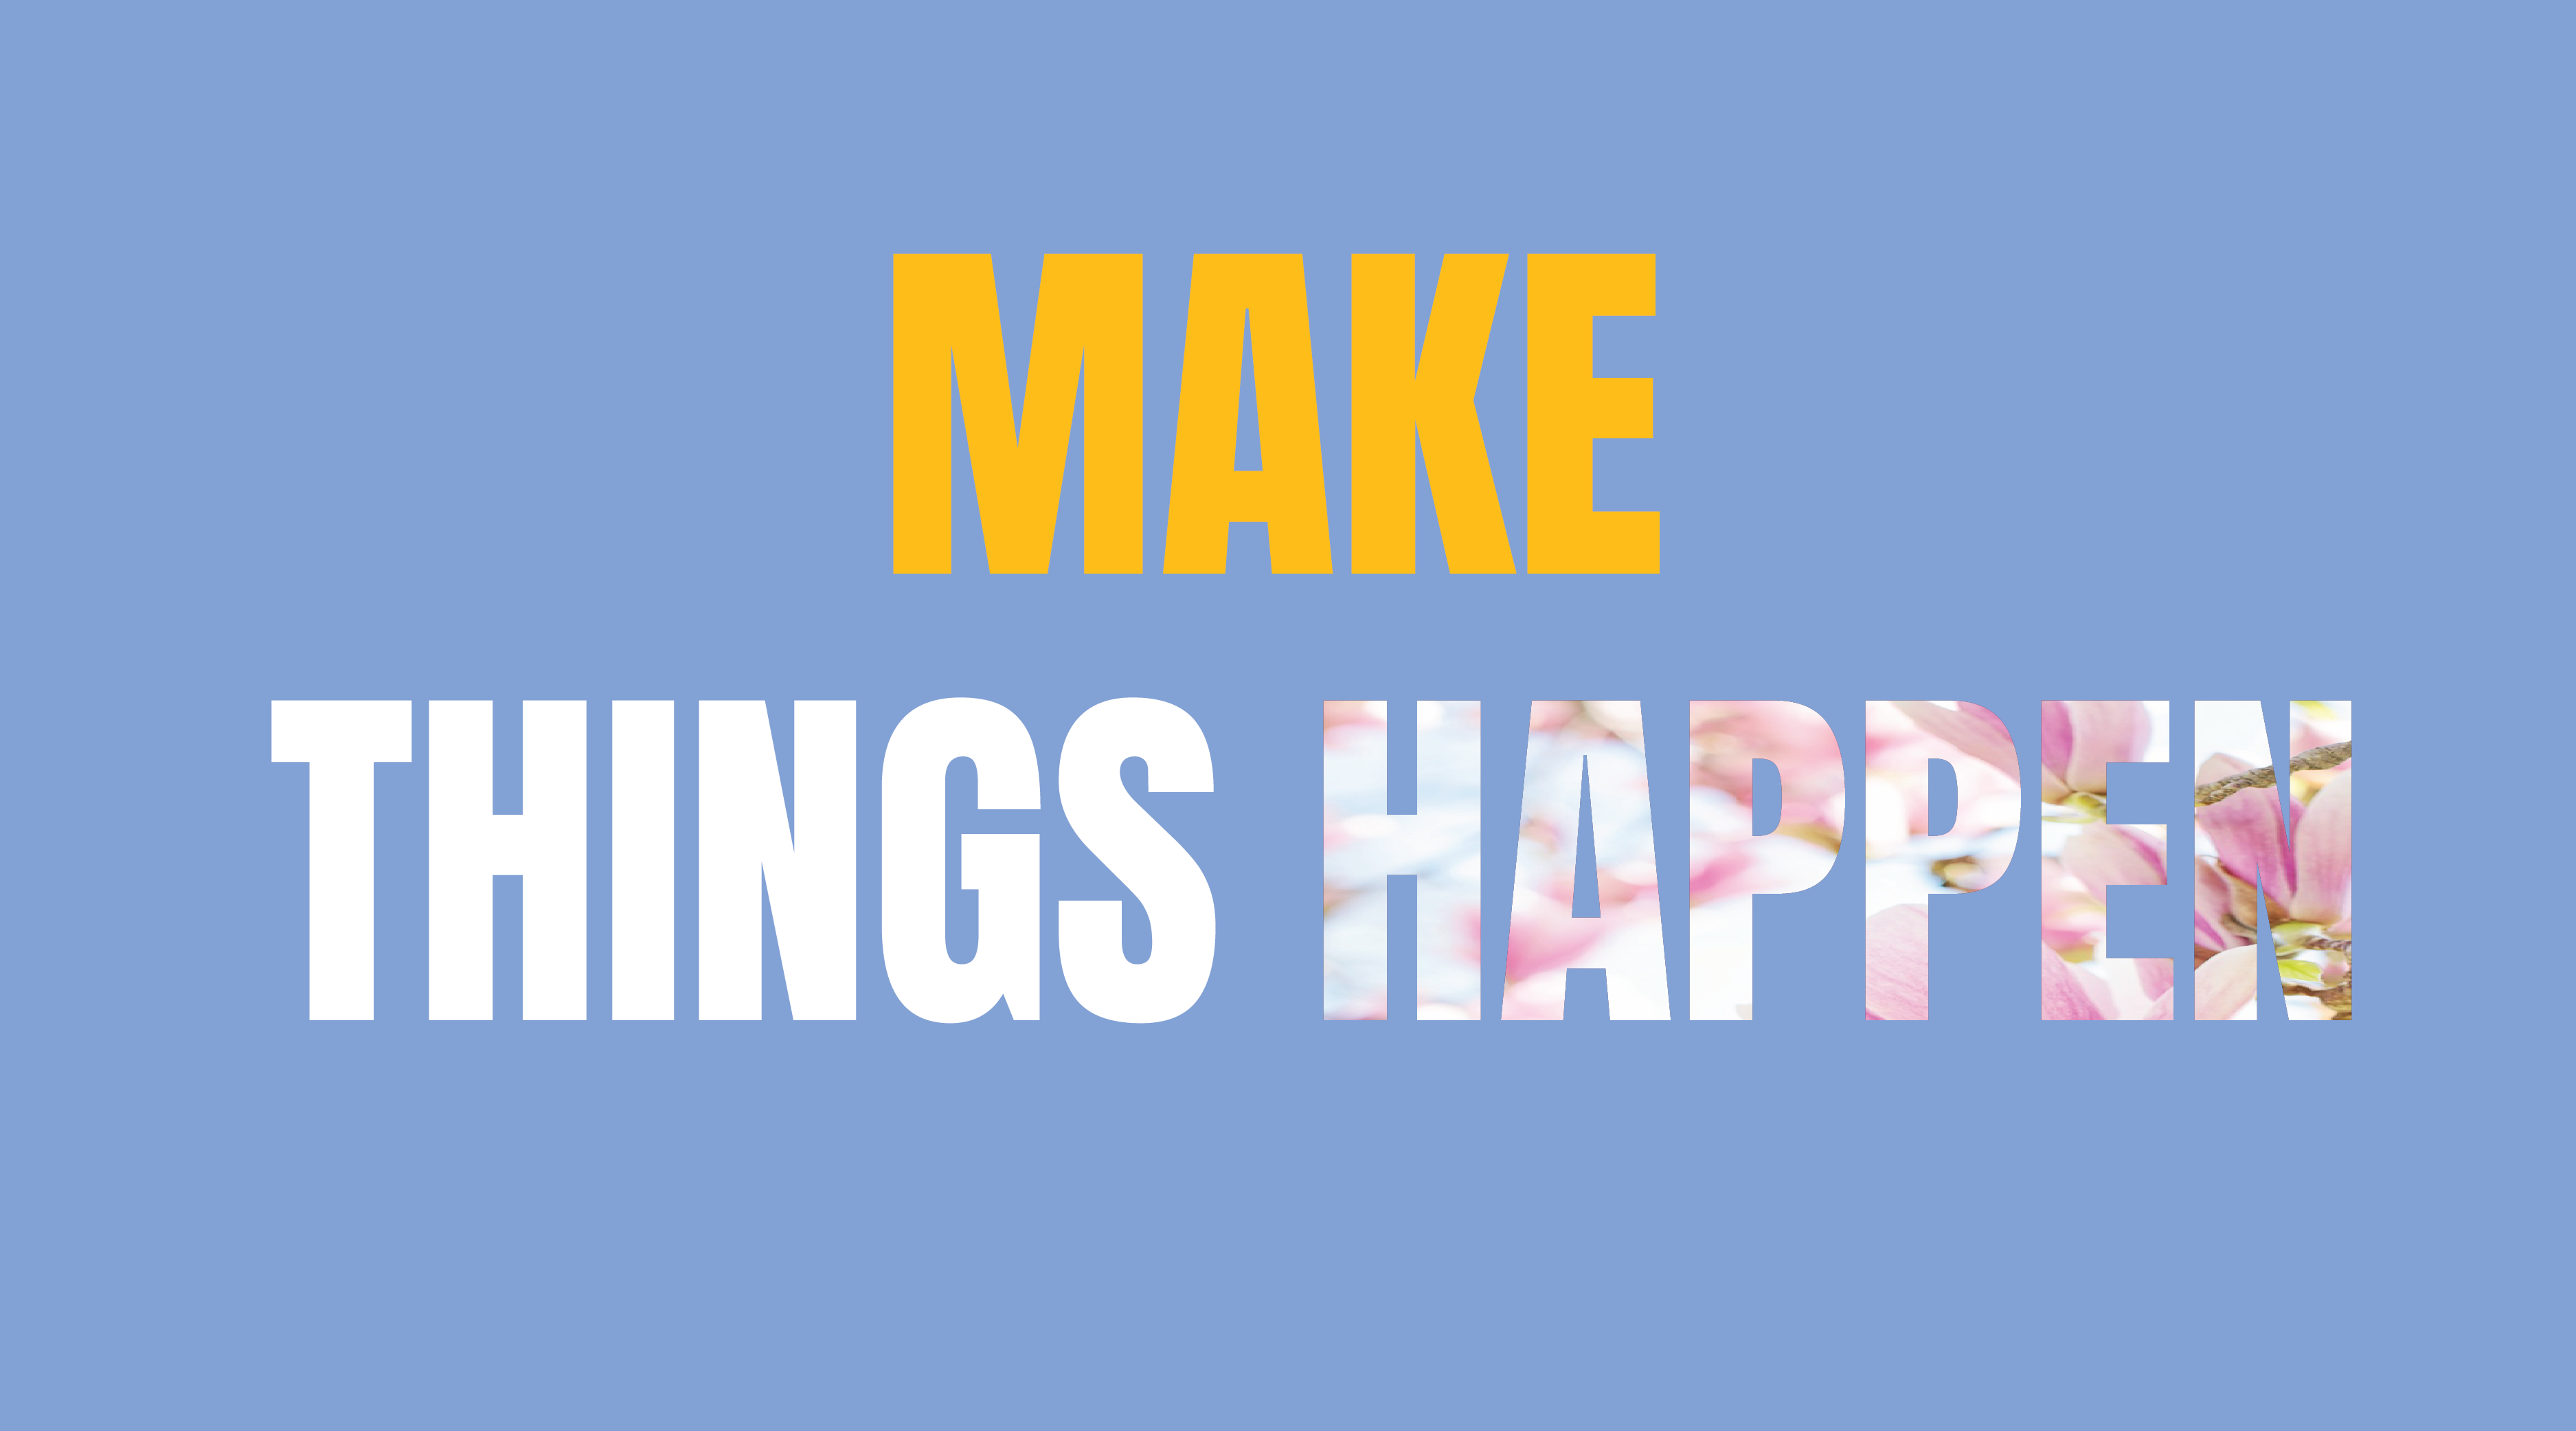 Make Things Happen Inspirational Text Do Your Best